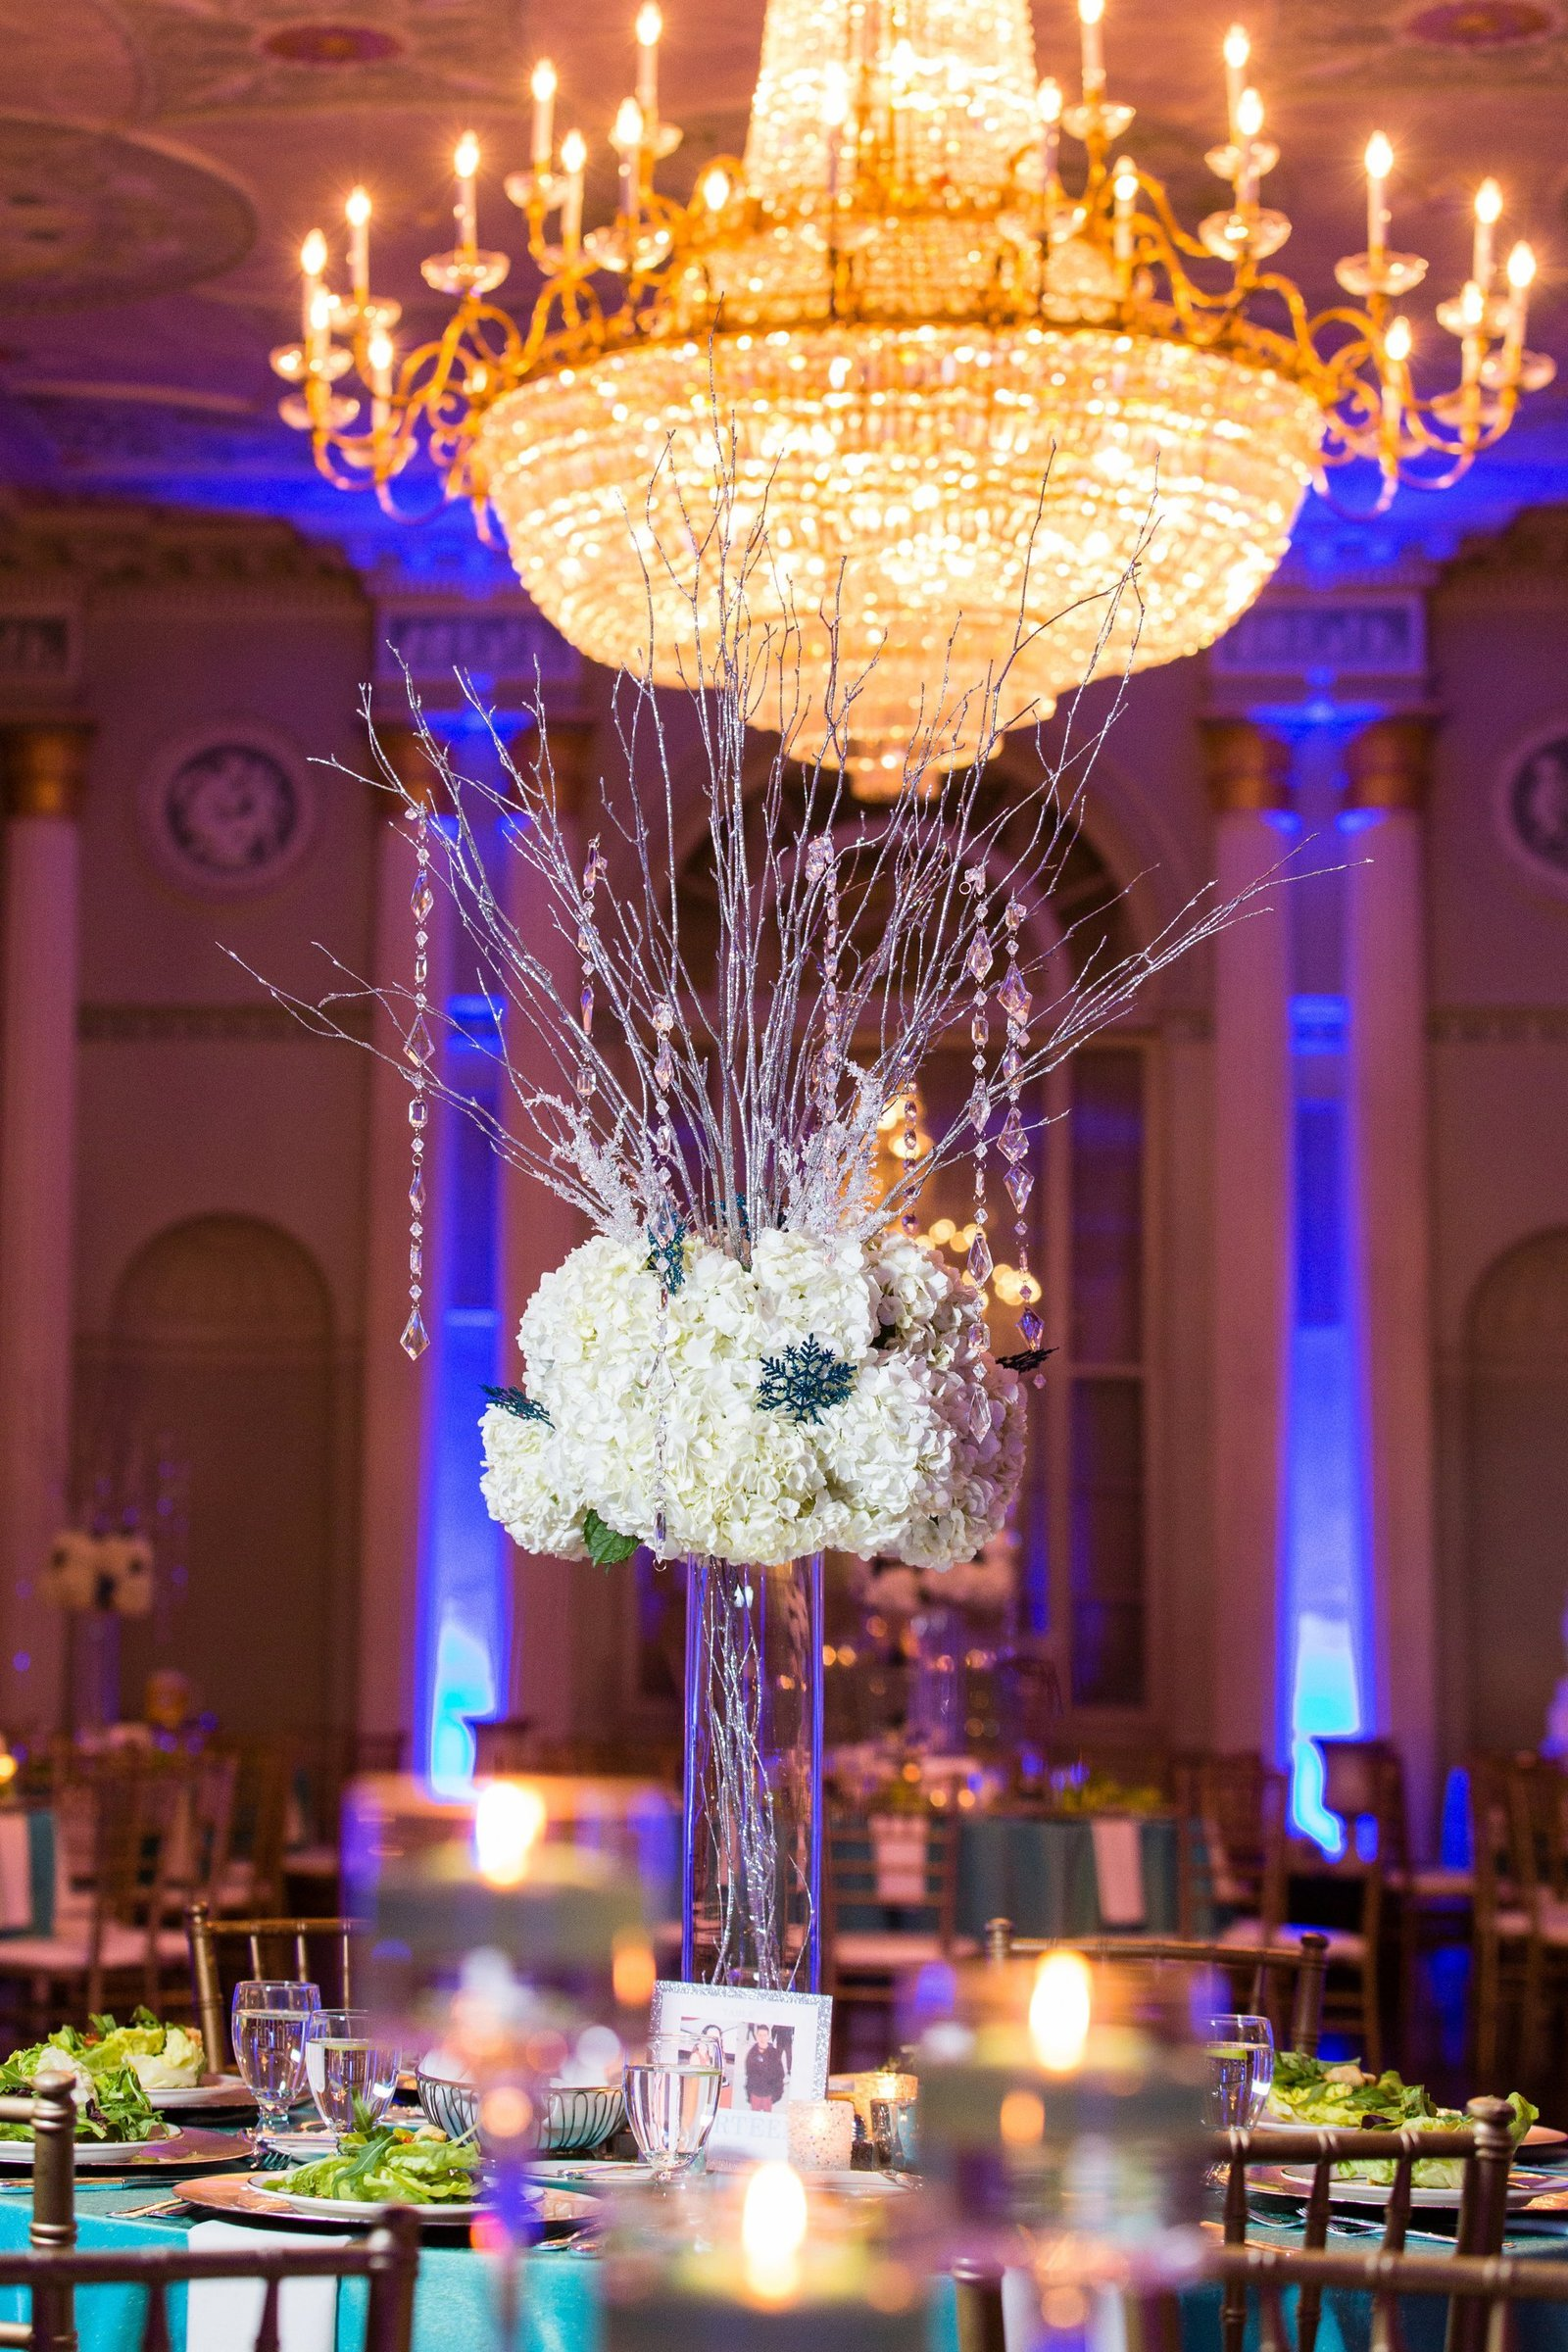 biltmore-ballrooms-wedding-decor